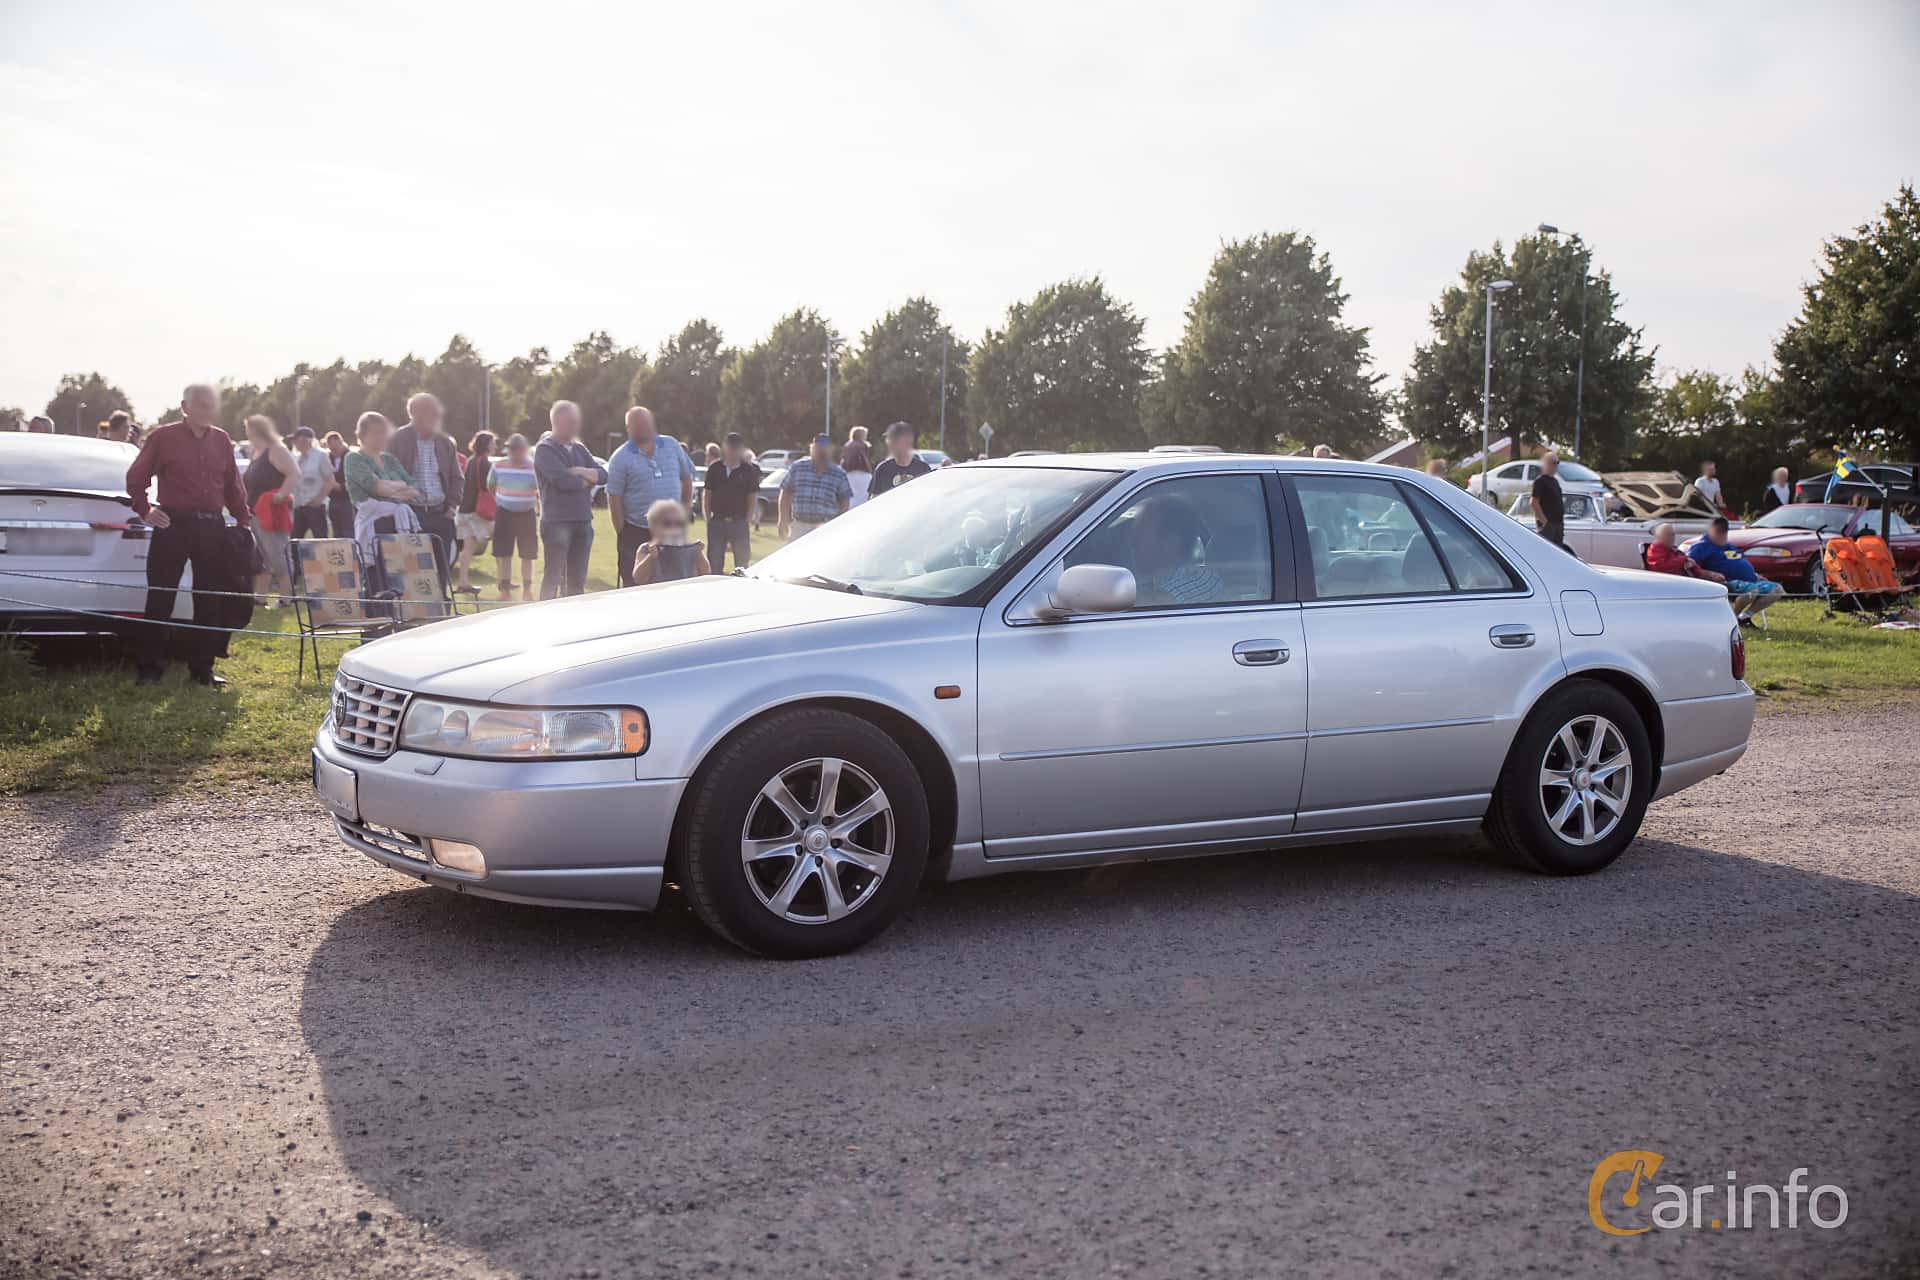 4 Images Of Cadillac Seville Sts 4 6 V8 Automatic 305hp 2003 By Jarbo